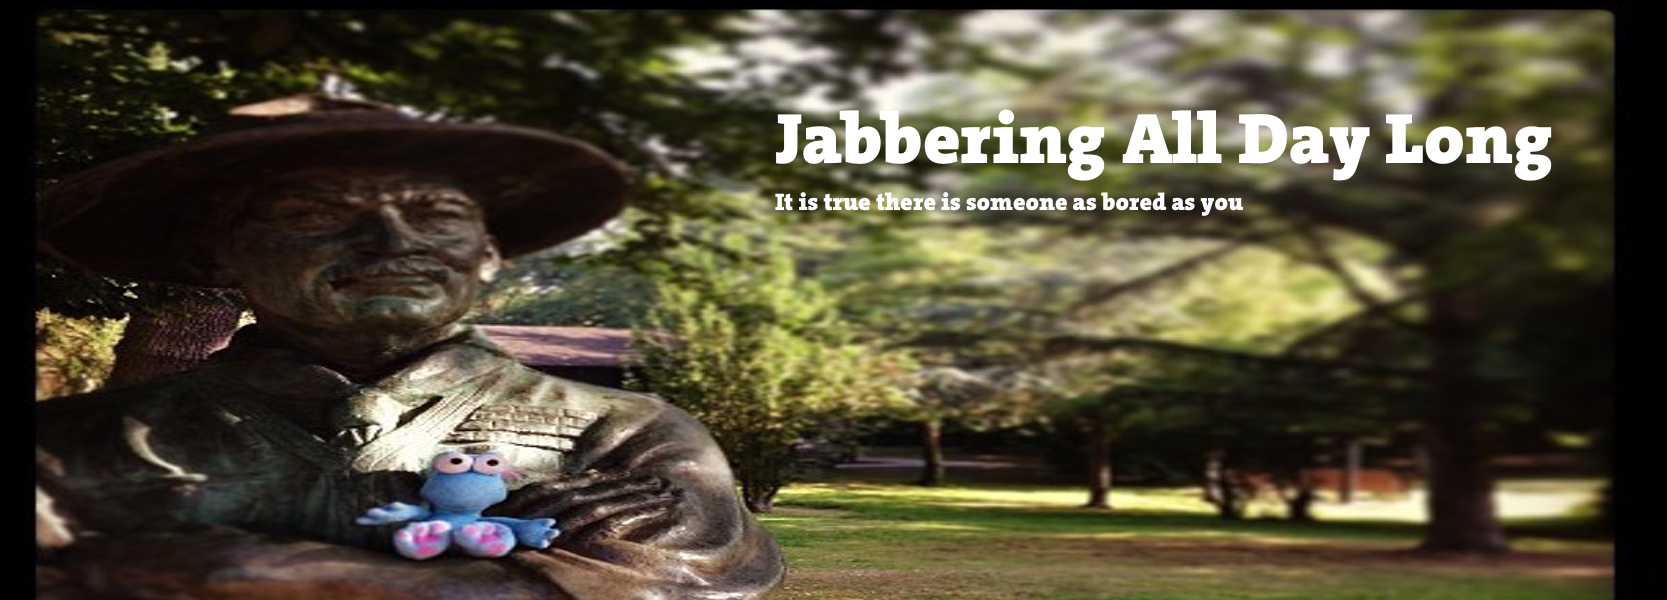 Jabbering All Day Long